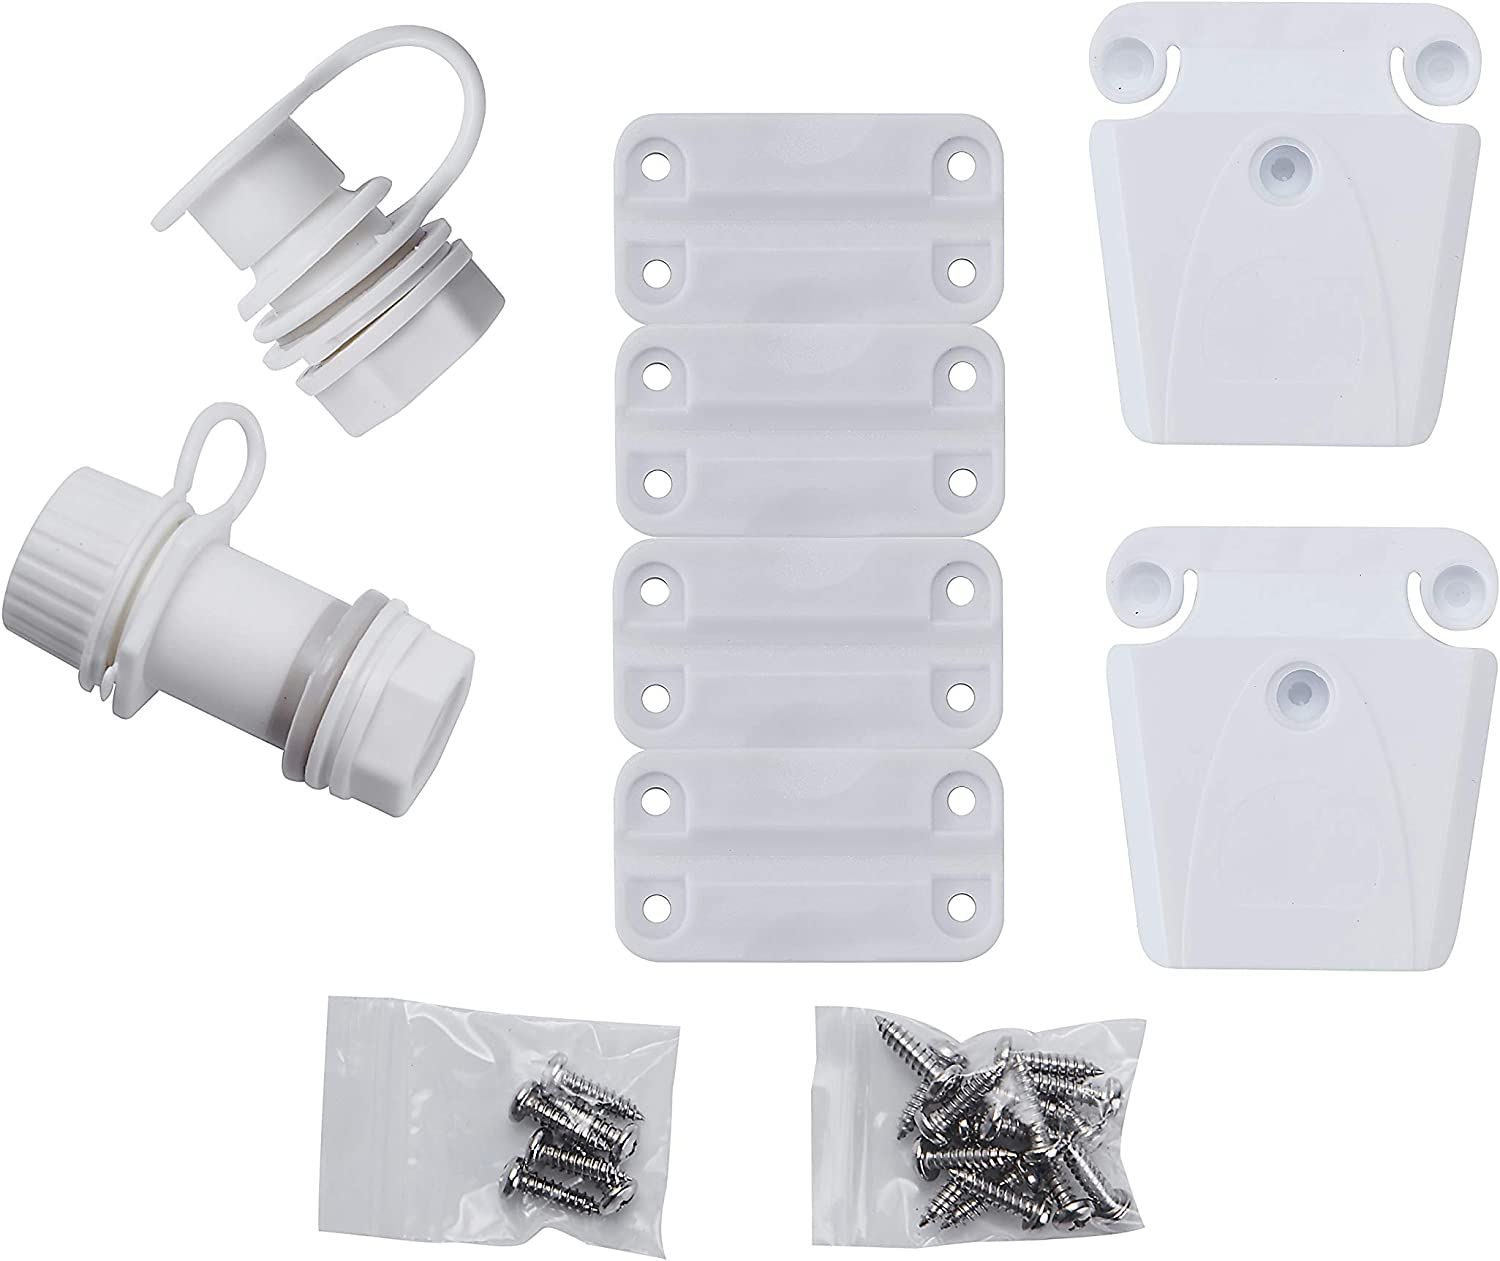 GETIT Igloo Cooler Replacement Parts Kit for Ice Chest,Plastic Hinges,Drain Plug,Latches and Latch Posts